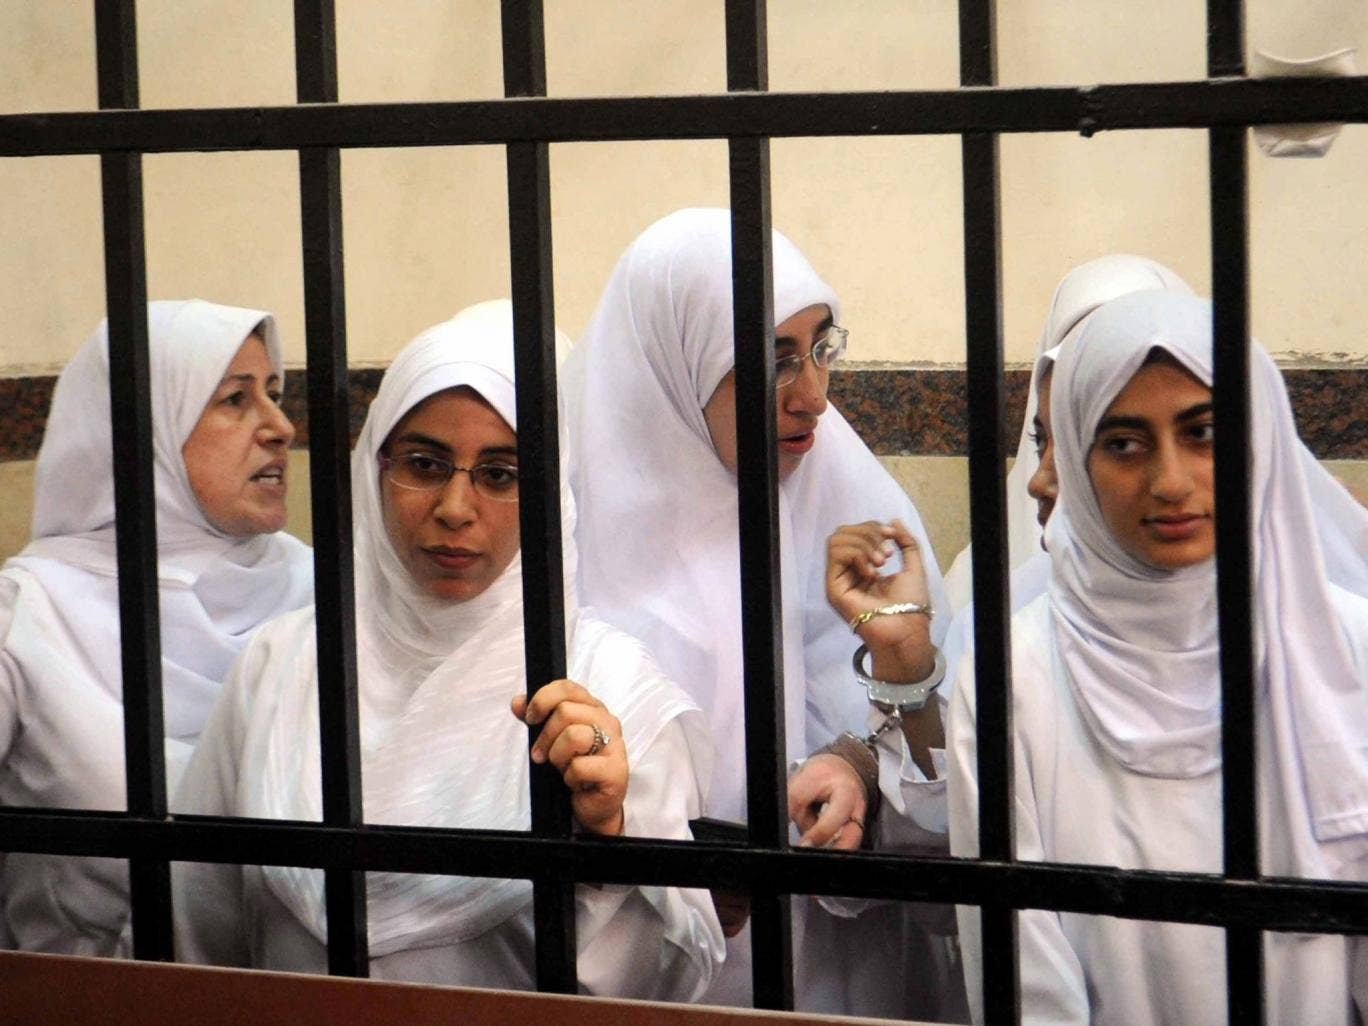 Some of the 21 Islamist women and girls who were arrested for demonstrating in Alexandria. The adults were each jailed for 11 years while the teenagers were sent to children's homes